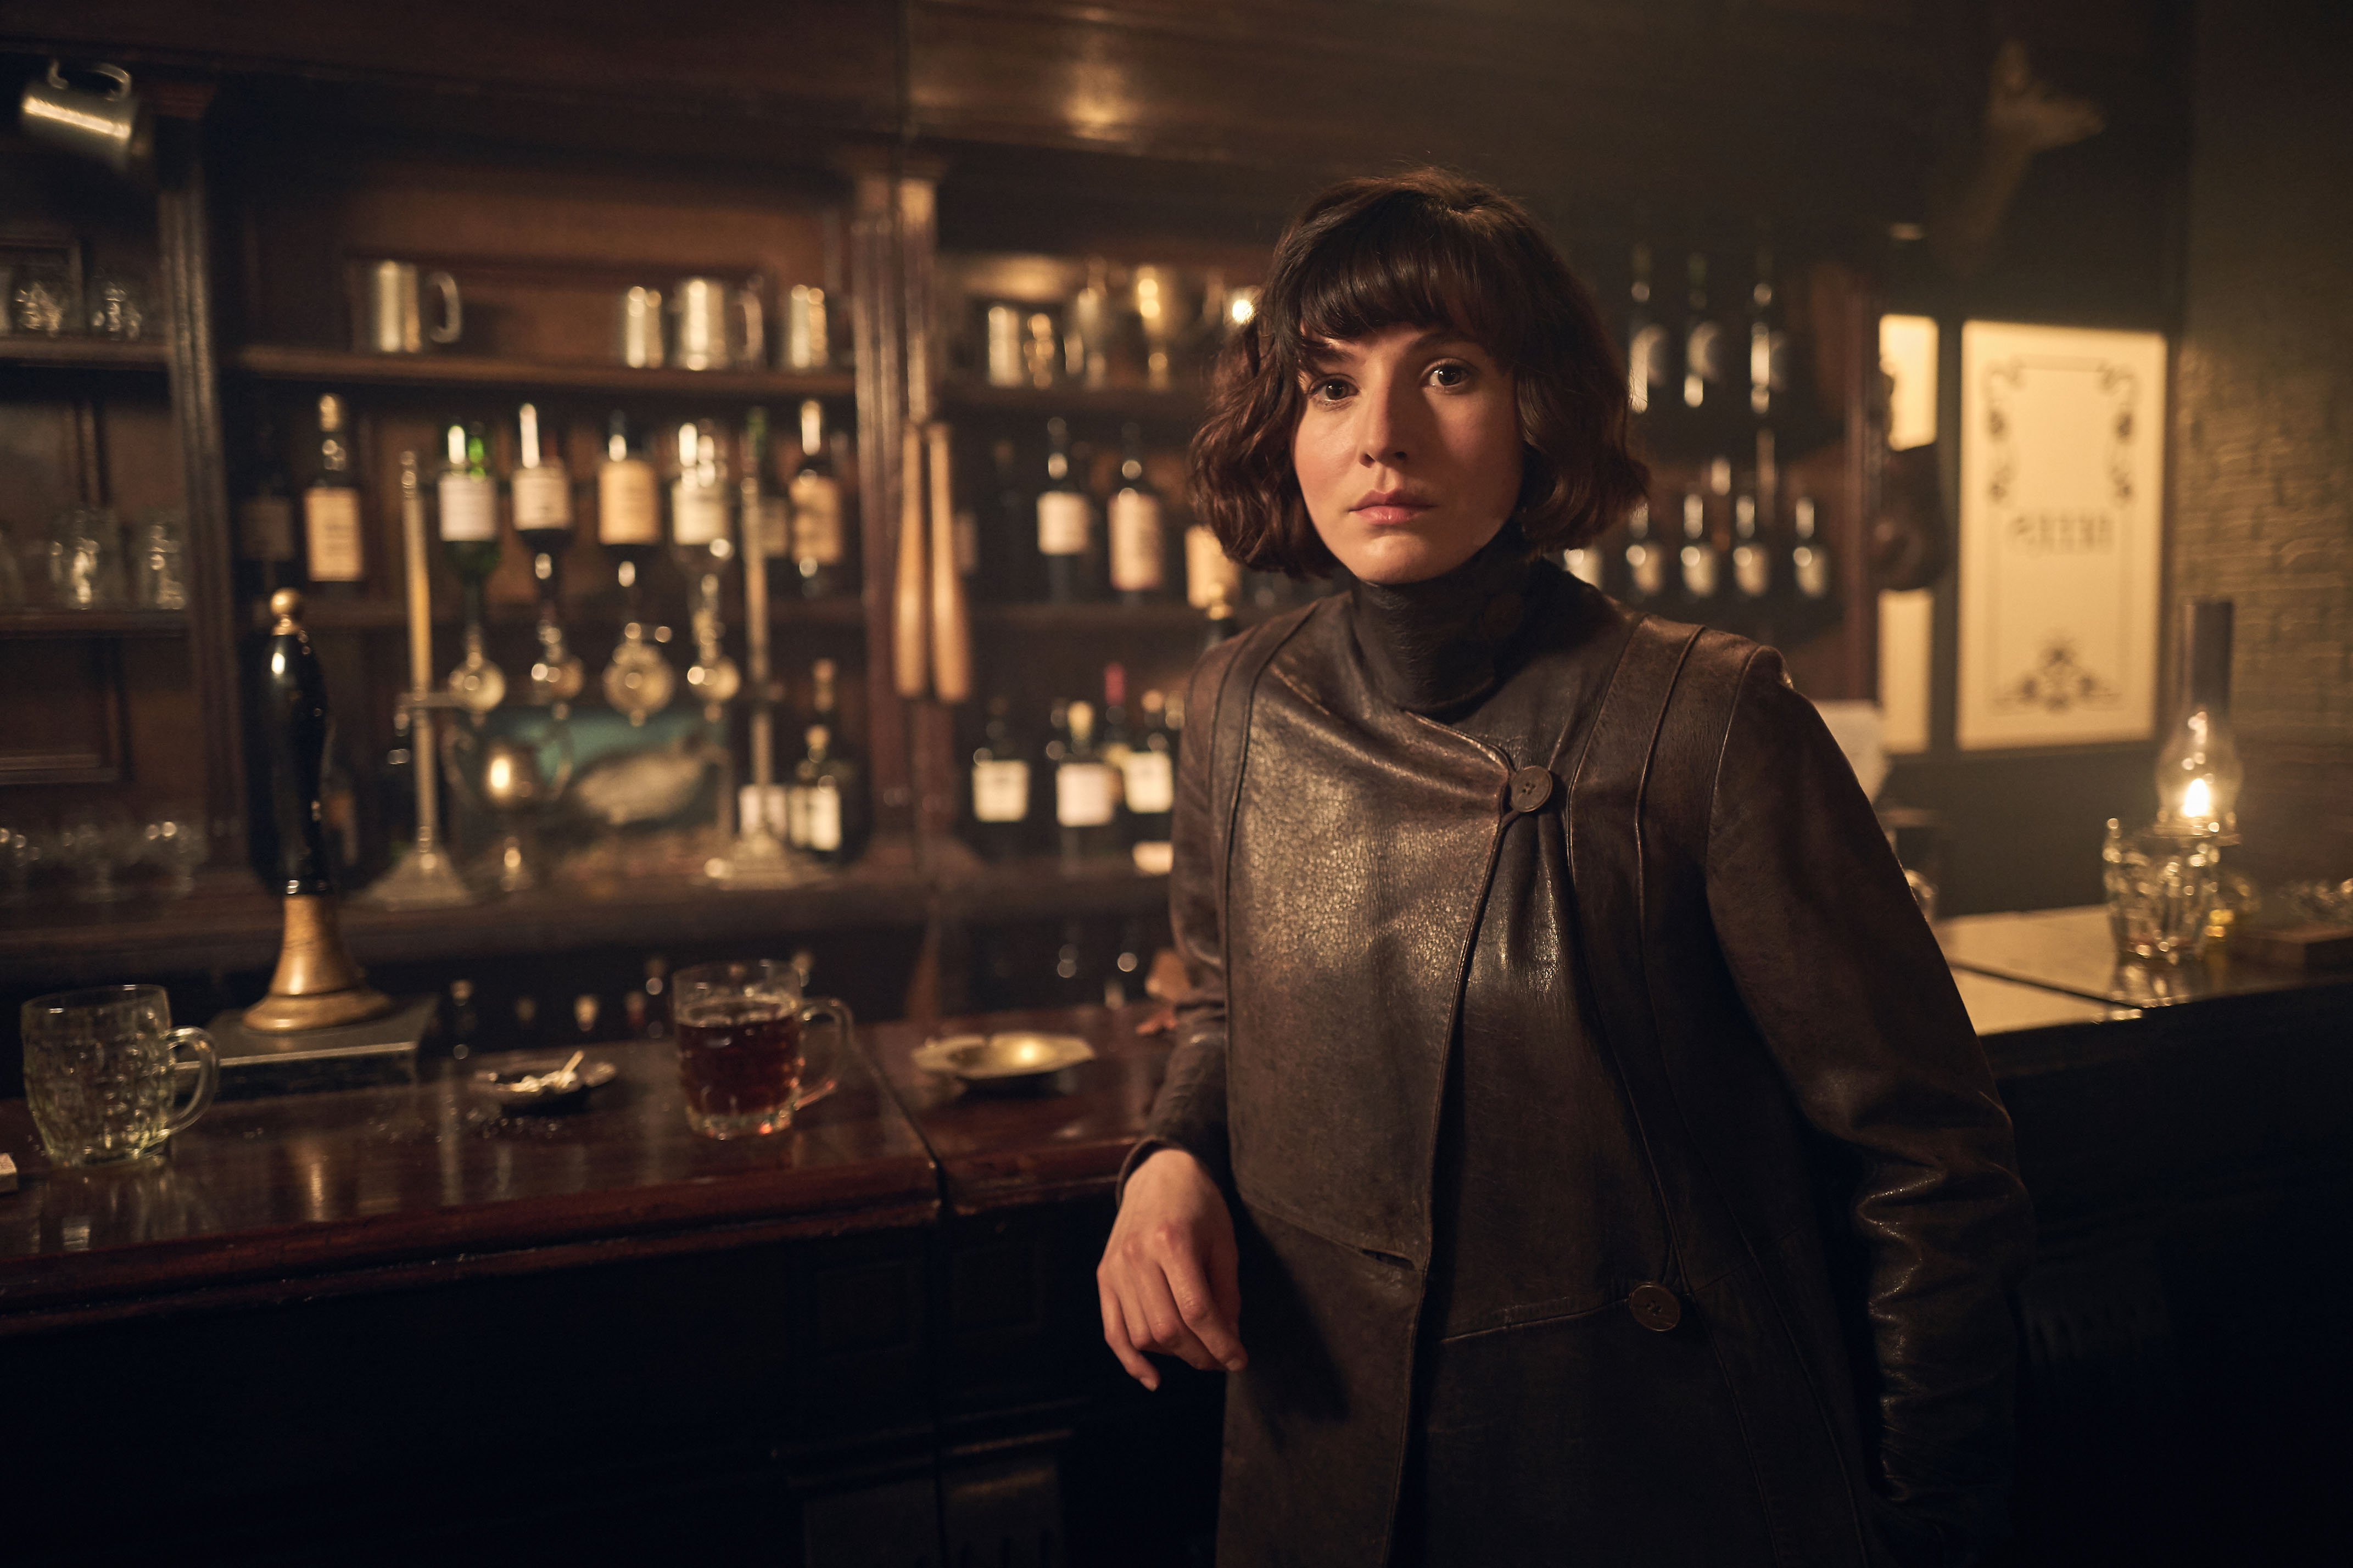 Jessie Eden appears for the first time in Season 4 of 'Peaky Blinders'. (Source: Netflix)